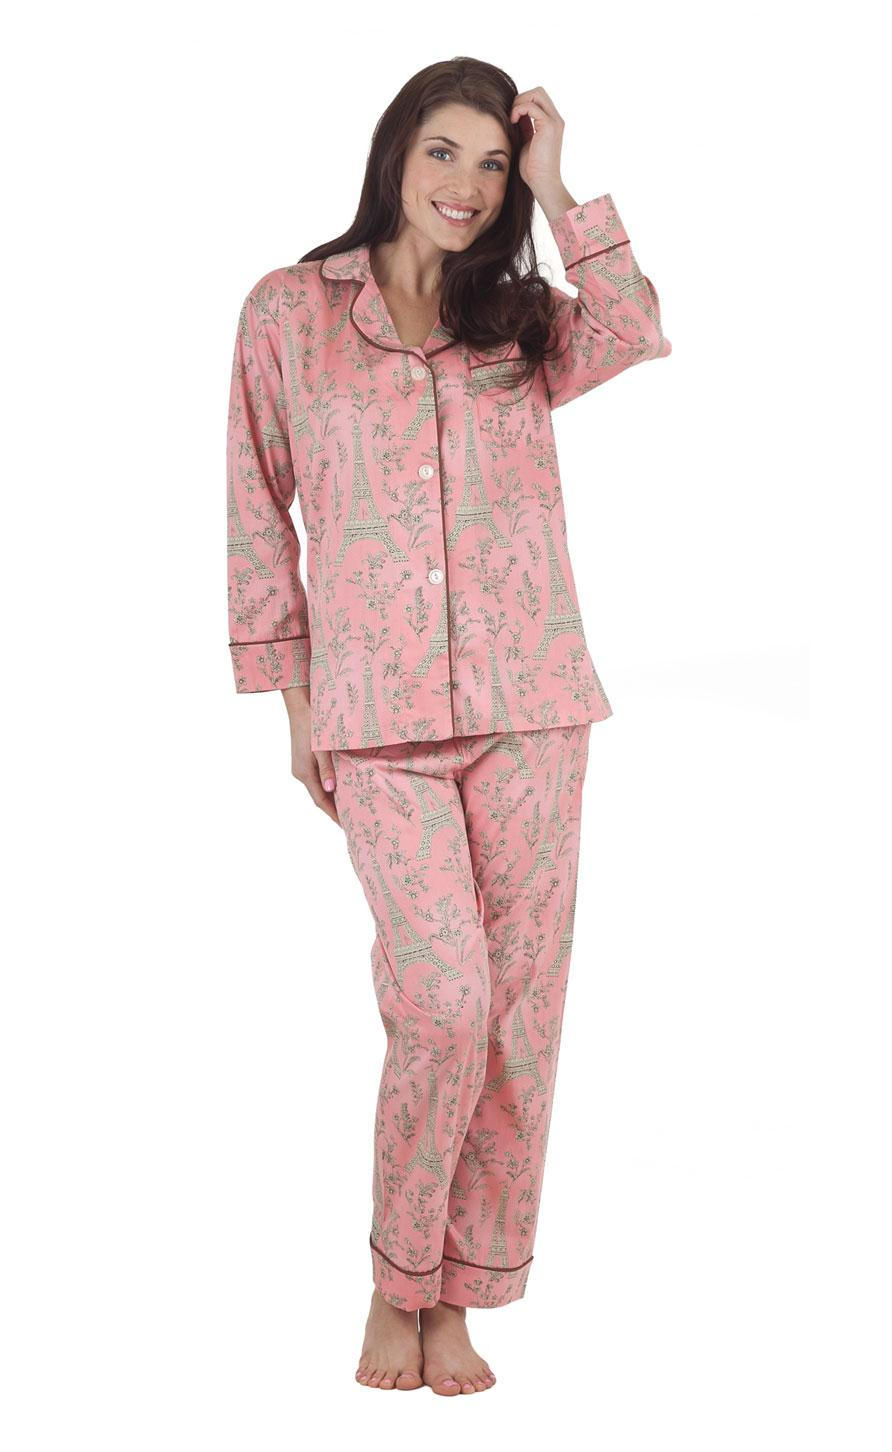 Our customers tell us time and time again how much they love to live in our nightshirts. There is something wonderful about comfort and a design that makes us all smile. The Cat's Pajamas Women's Red Sprinkle Dots Cotton Knit Classic Nightshirt. $; Only 4 left in stock. Lazy One